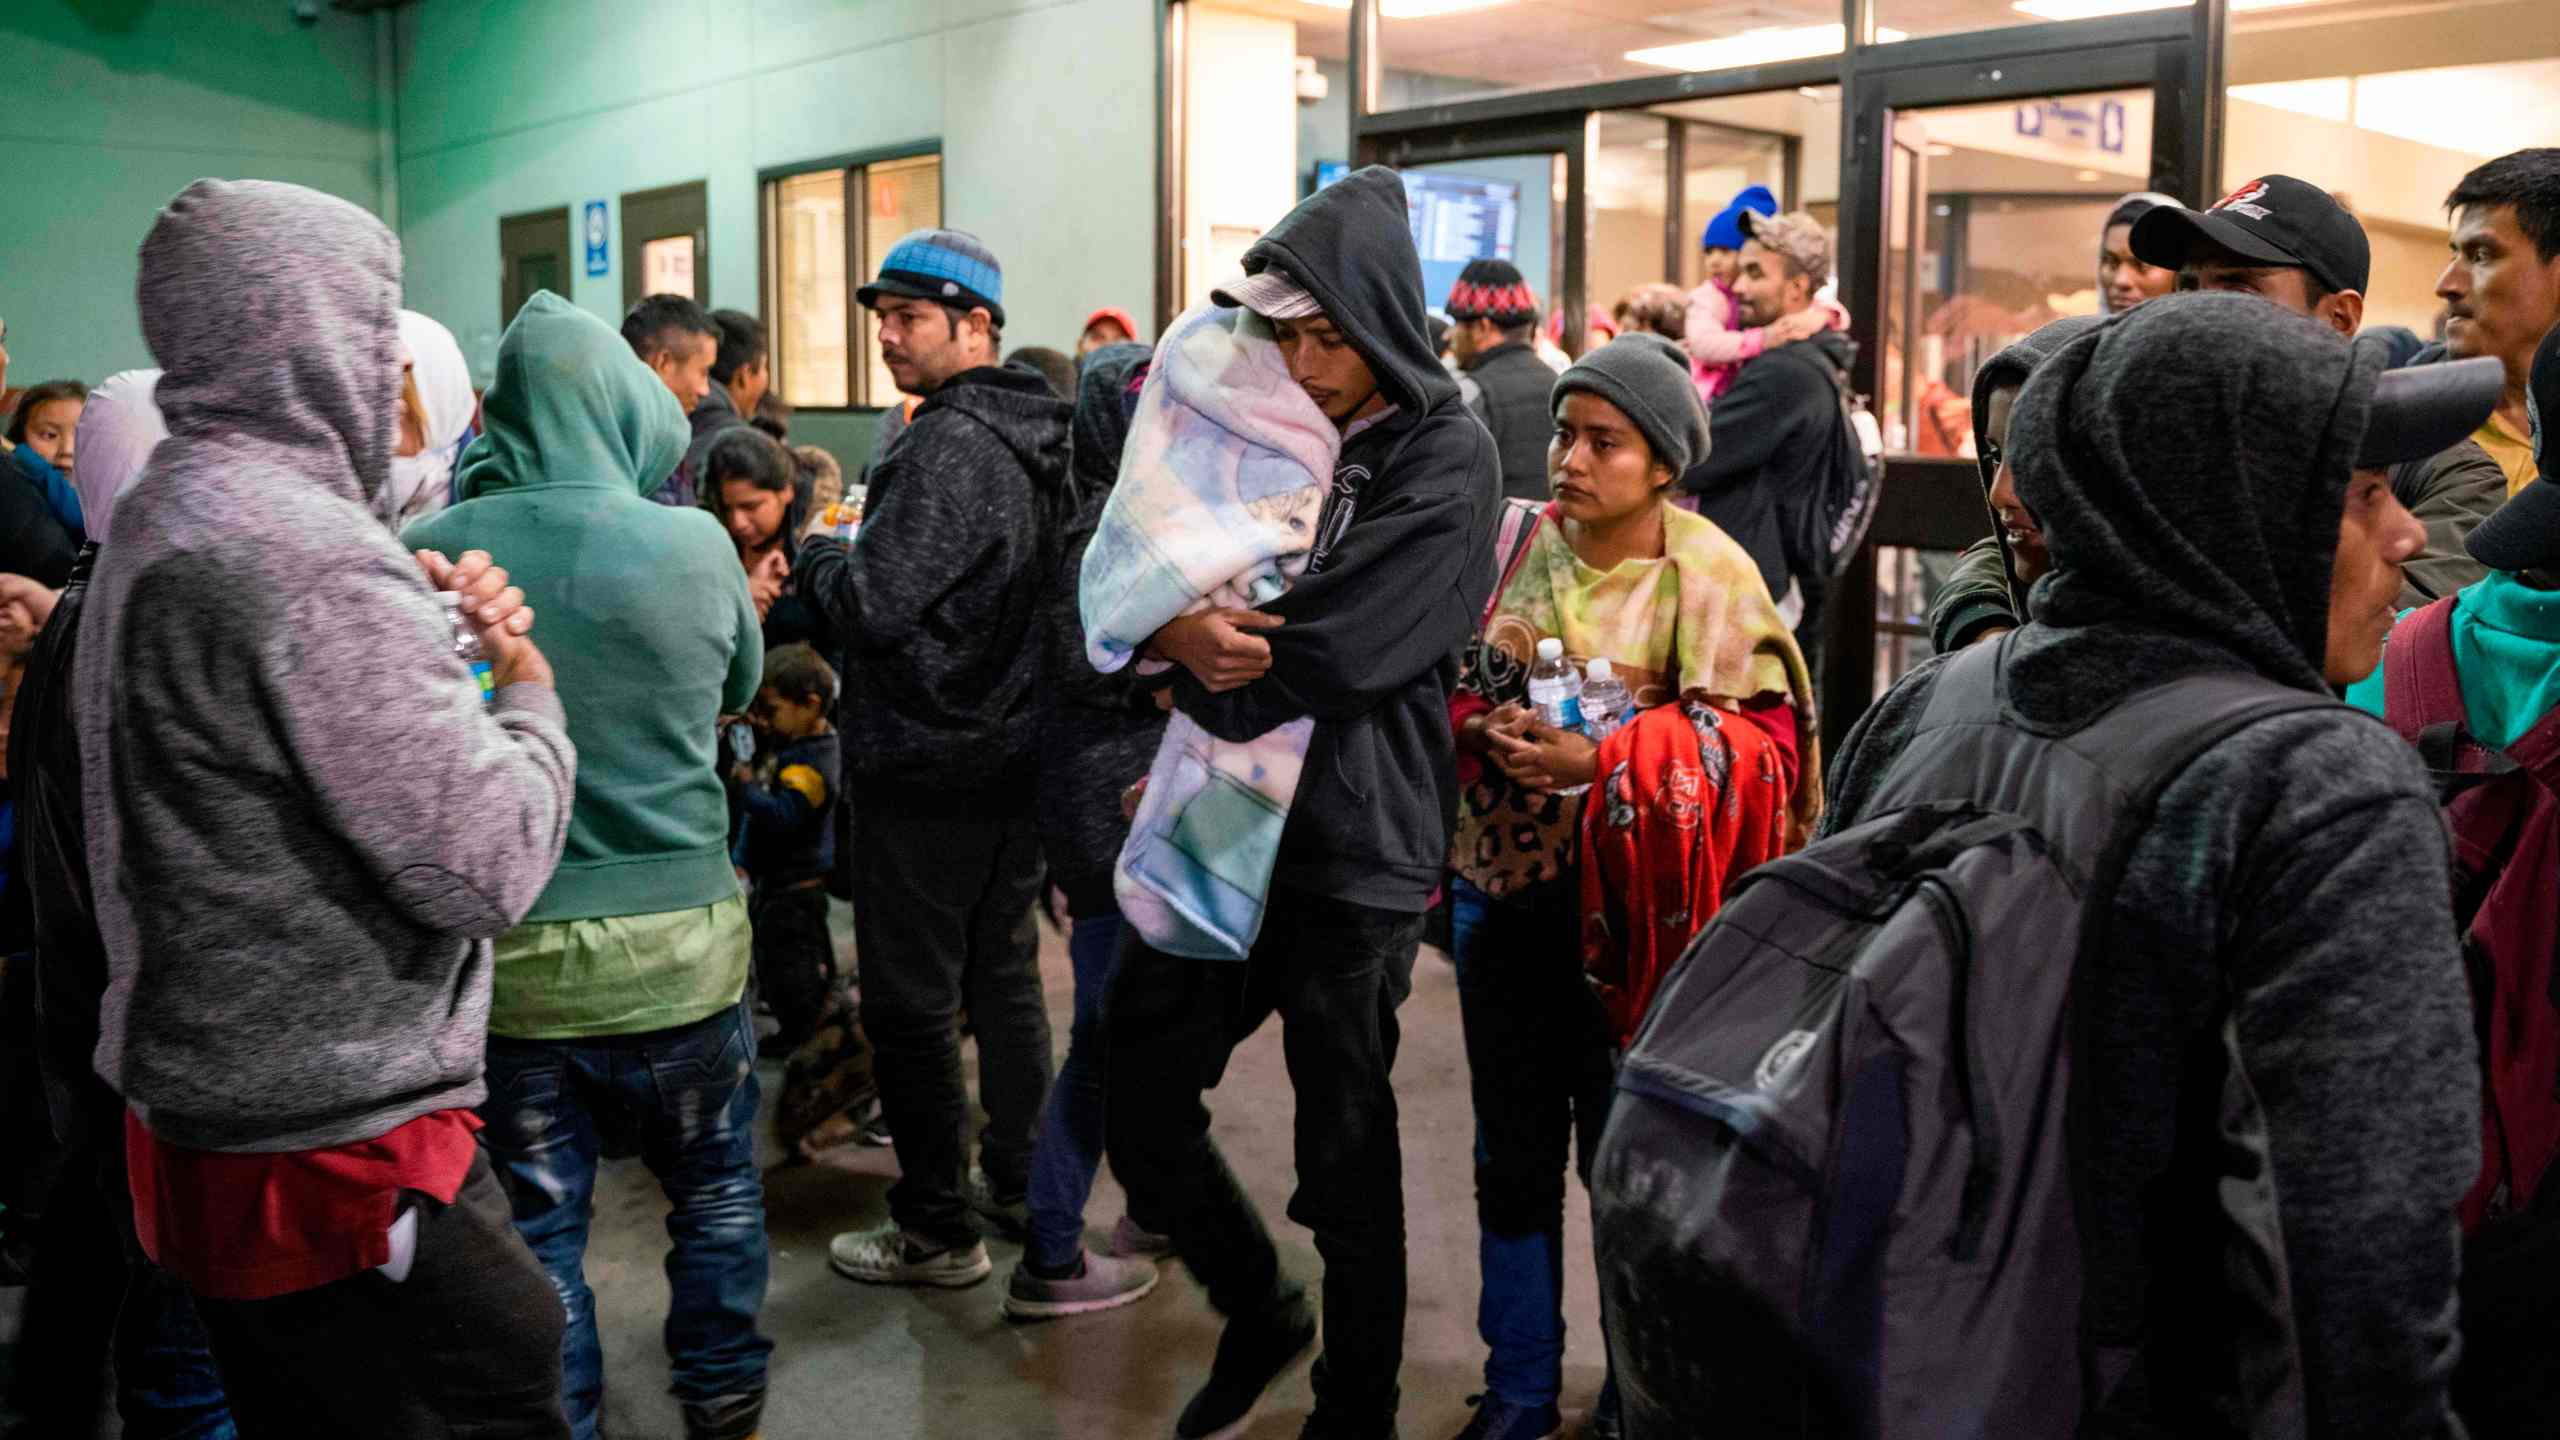 Asylum seekers stand at a bus stop after they were dropped off by Immigration and Customs Enforcement (ICE) at the Greyhound bus station in downtown El Paso, Texas late on Dec. 23, 2018. The group of around 200, mostly made up of Central Americans, were left without money, food and means of communication. Volunteers from Annunciation house and other local churches came to aid and find a place to house them for the night. (Credit: PAUL RATJE/AFP/Getty Images)